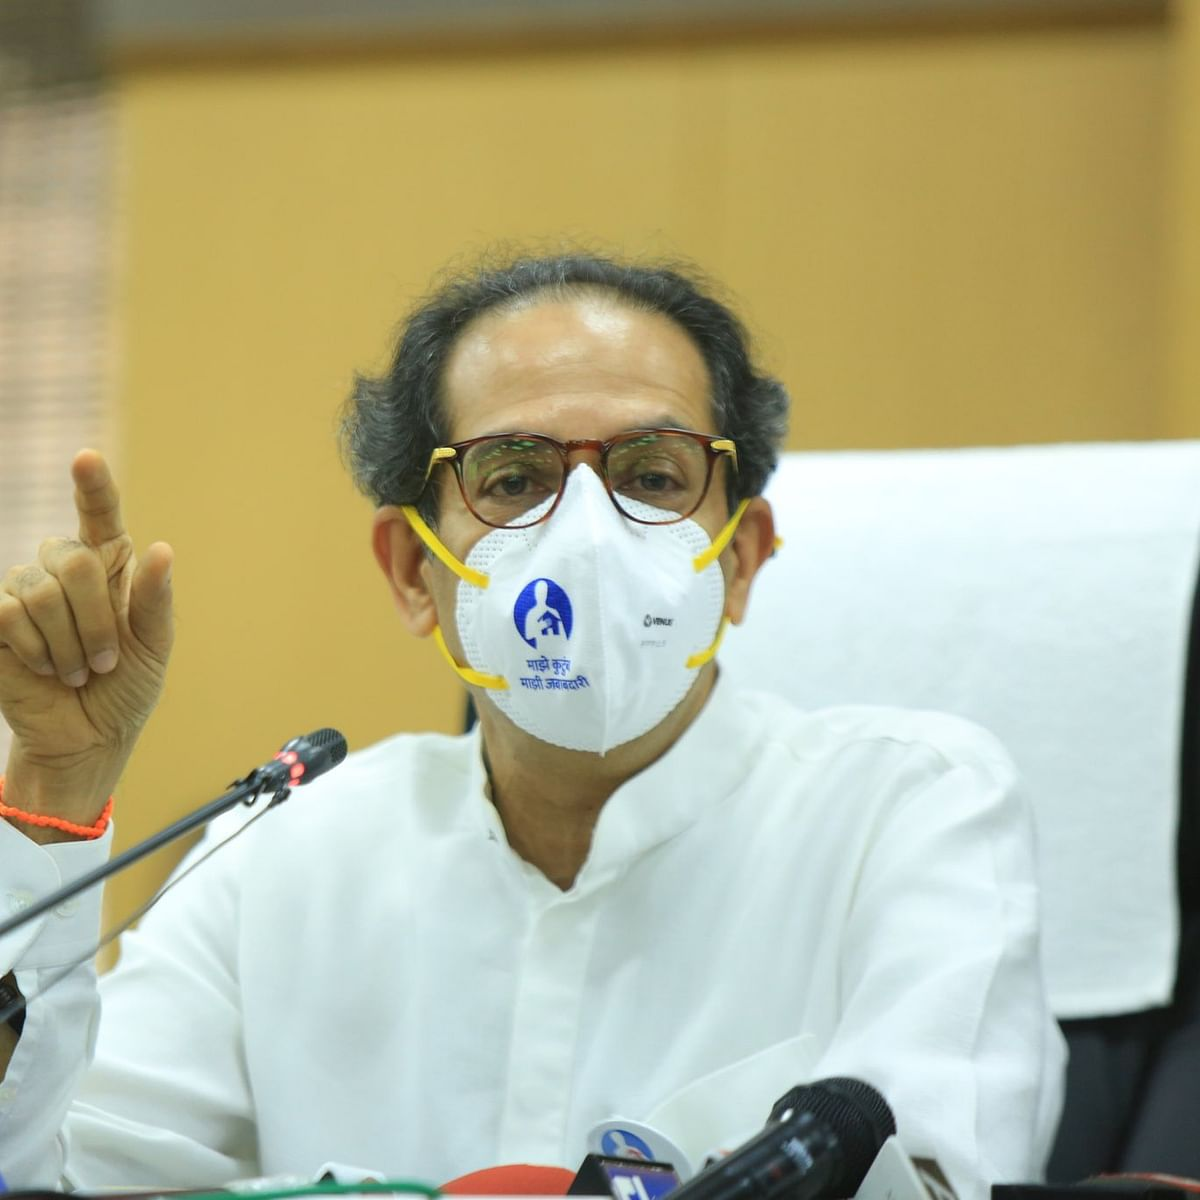 COVID-19: Section 144 imposed in Maharashtra till May 1; CM Uddhav Thackeray announces Rs 5,476 crore package